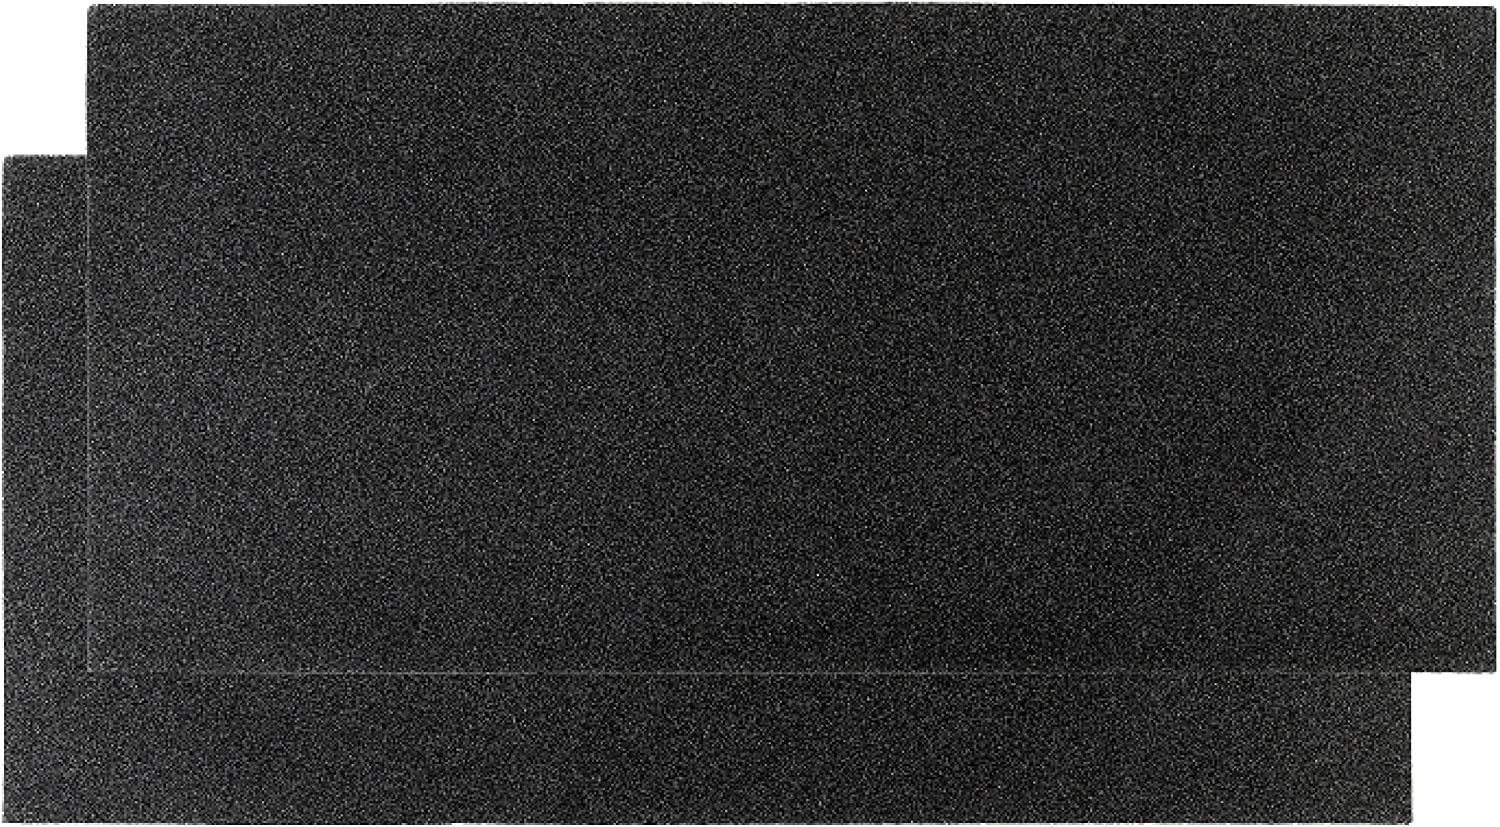 PetSafe Replacement High-Traction Tread for Happy Ride Folding Dog Ramp, Black : Pet Supplies